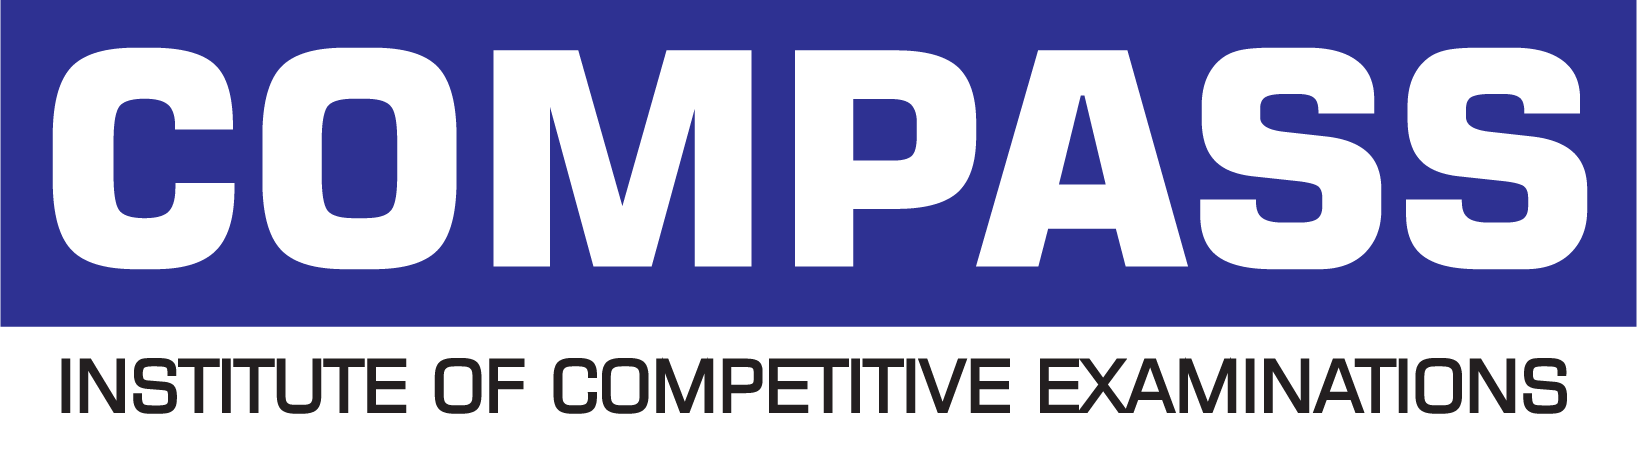 Compass Institute of Competitive Examinations